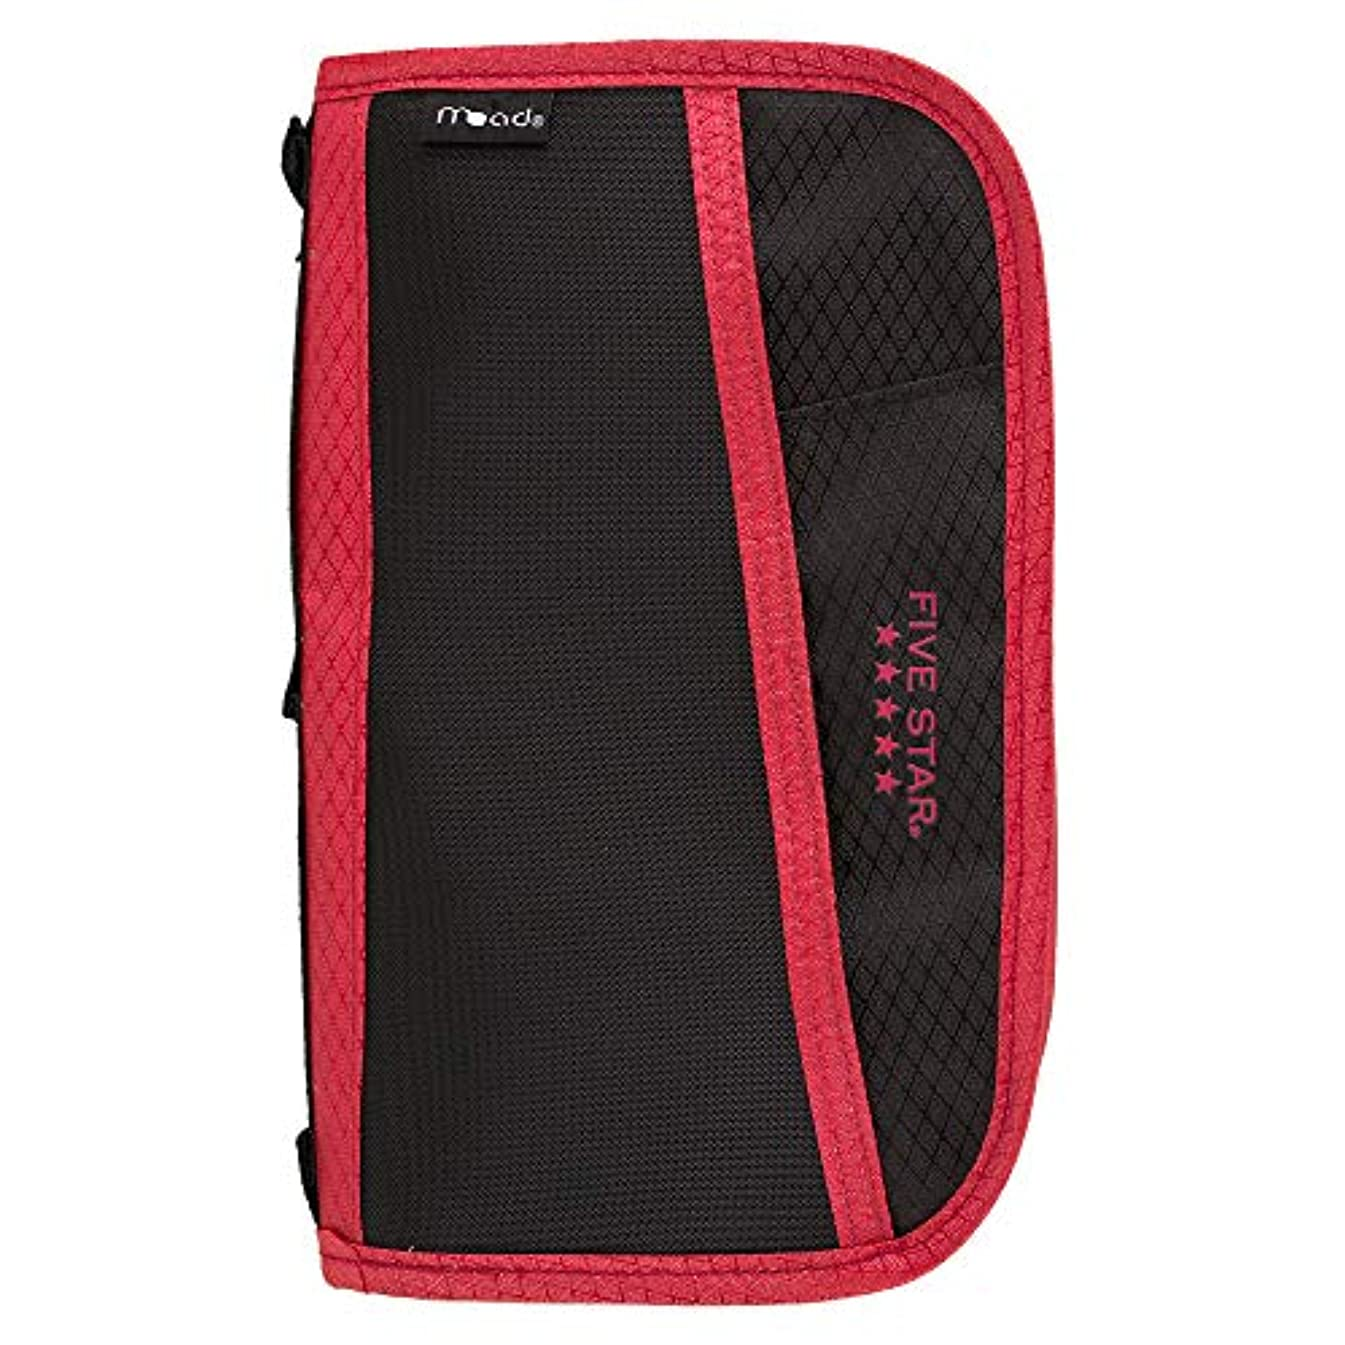 Five Star 3 Ring Binder Multi-Pocket Pencil Pouch - Red (50162)